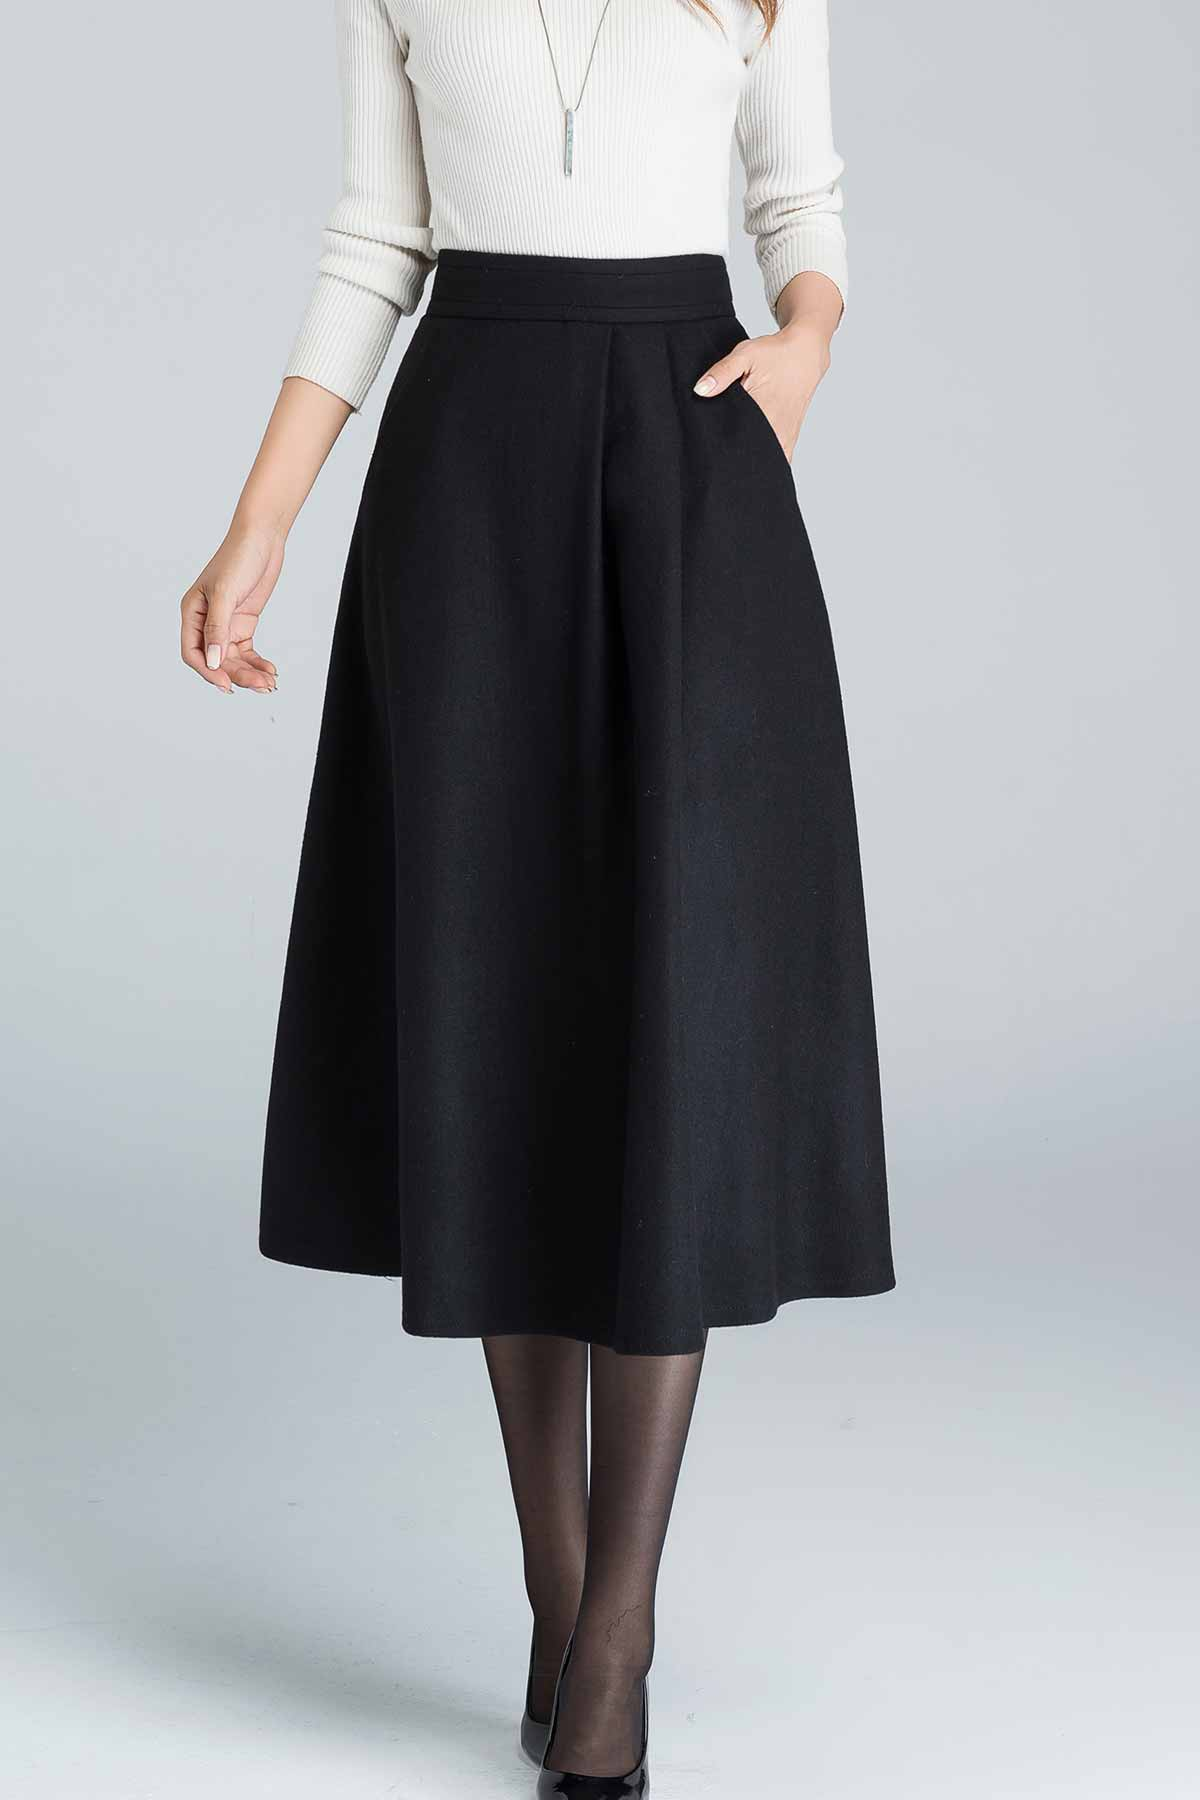 asymmetrical pleated A line midi wool skirt 1636#